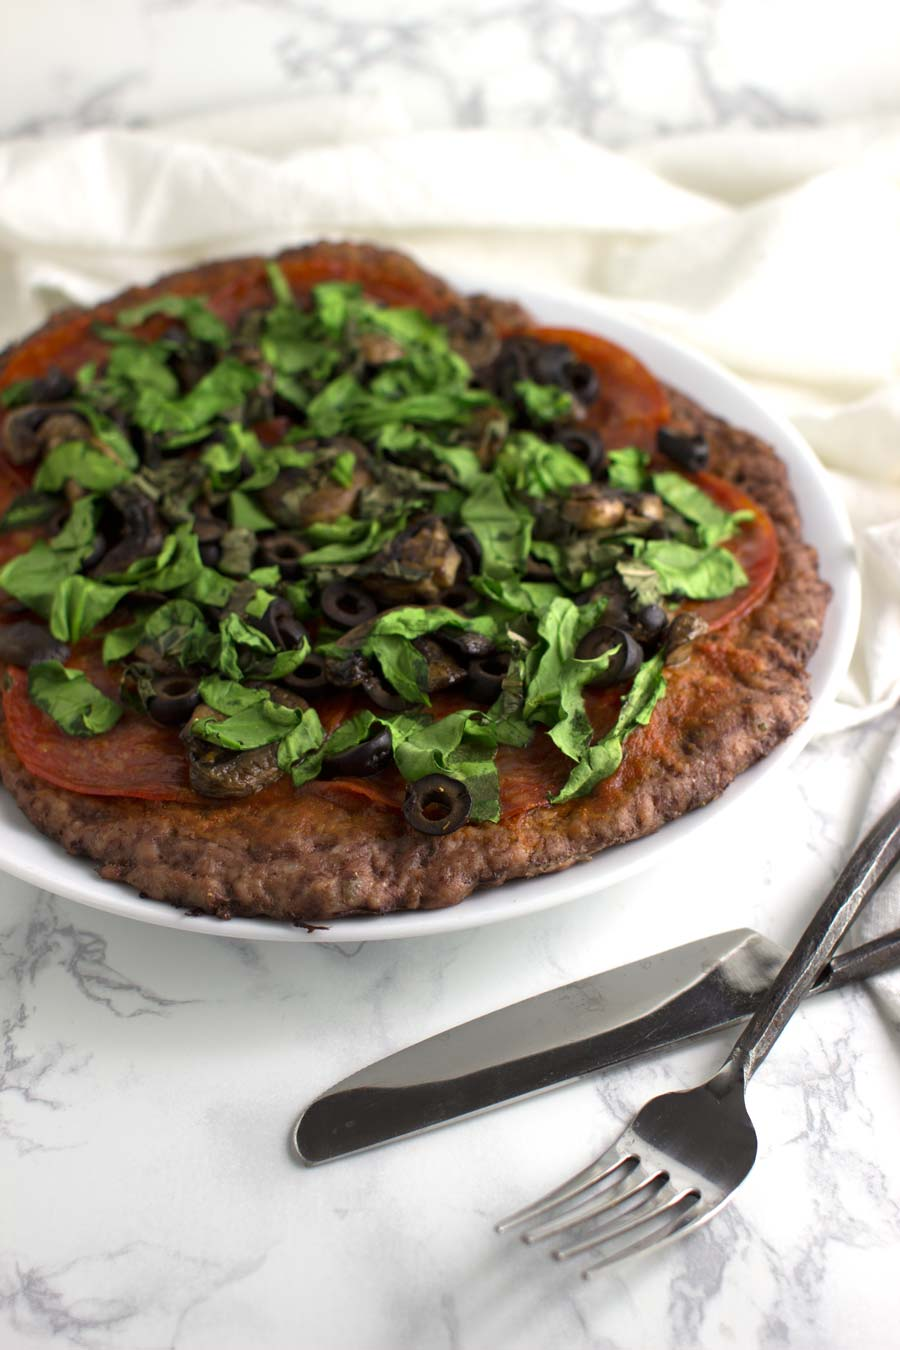 Meatza recipe from acleanplate.com #paleo #aip #autoimmuneprotocol